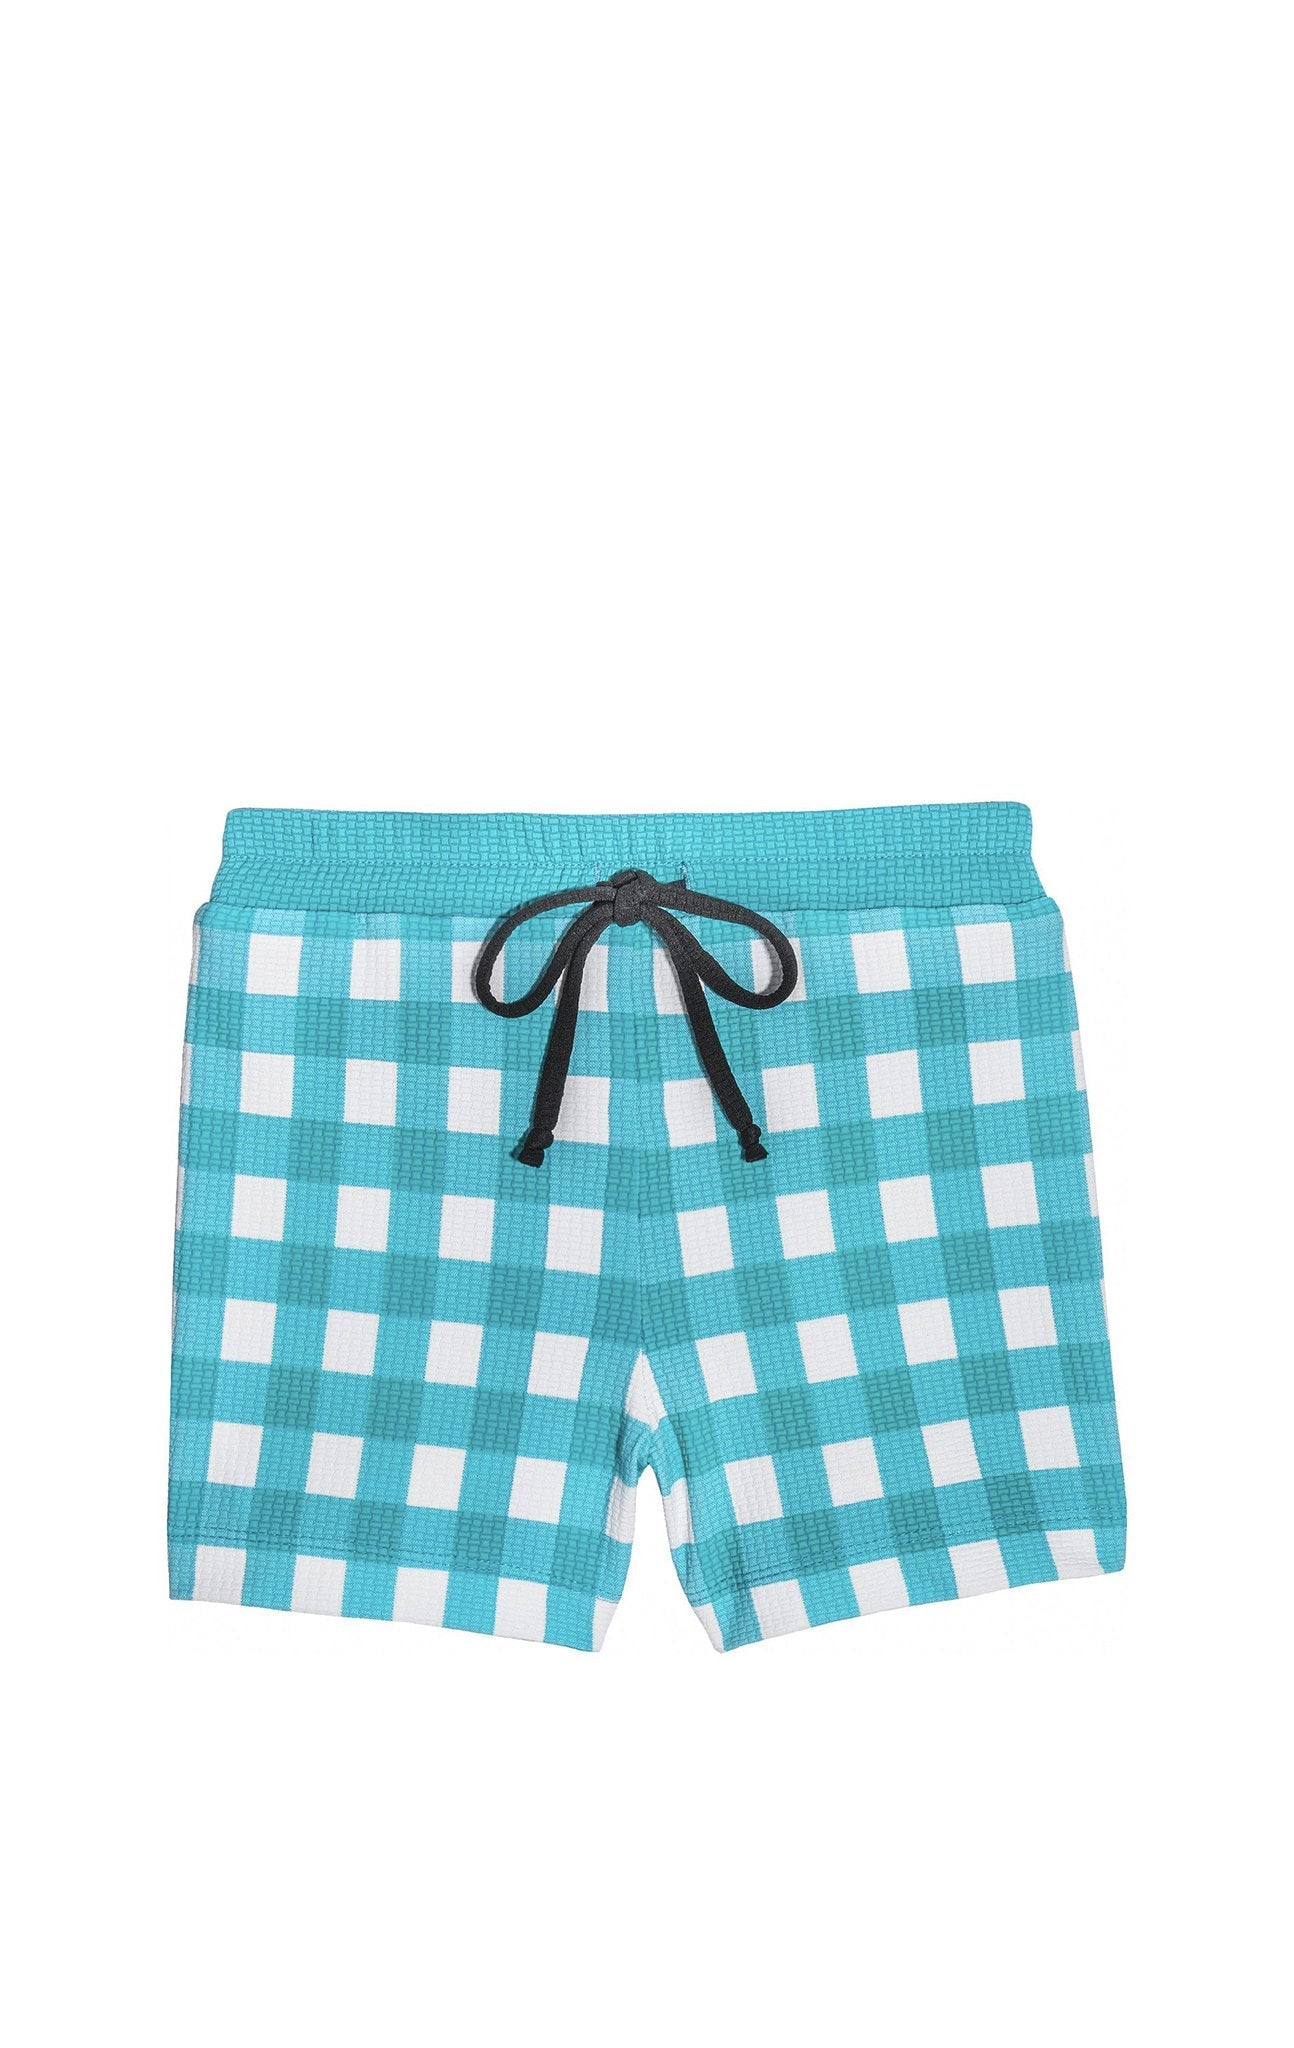 Bumby Boy Short in Mint Gingham